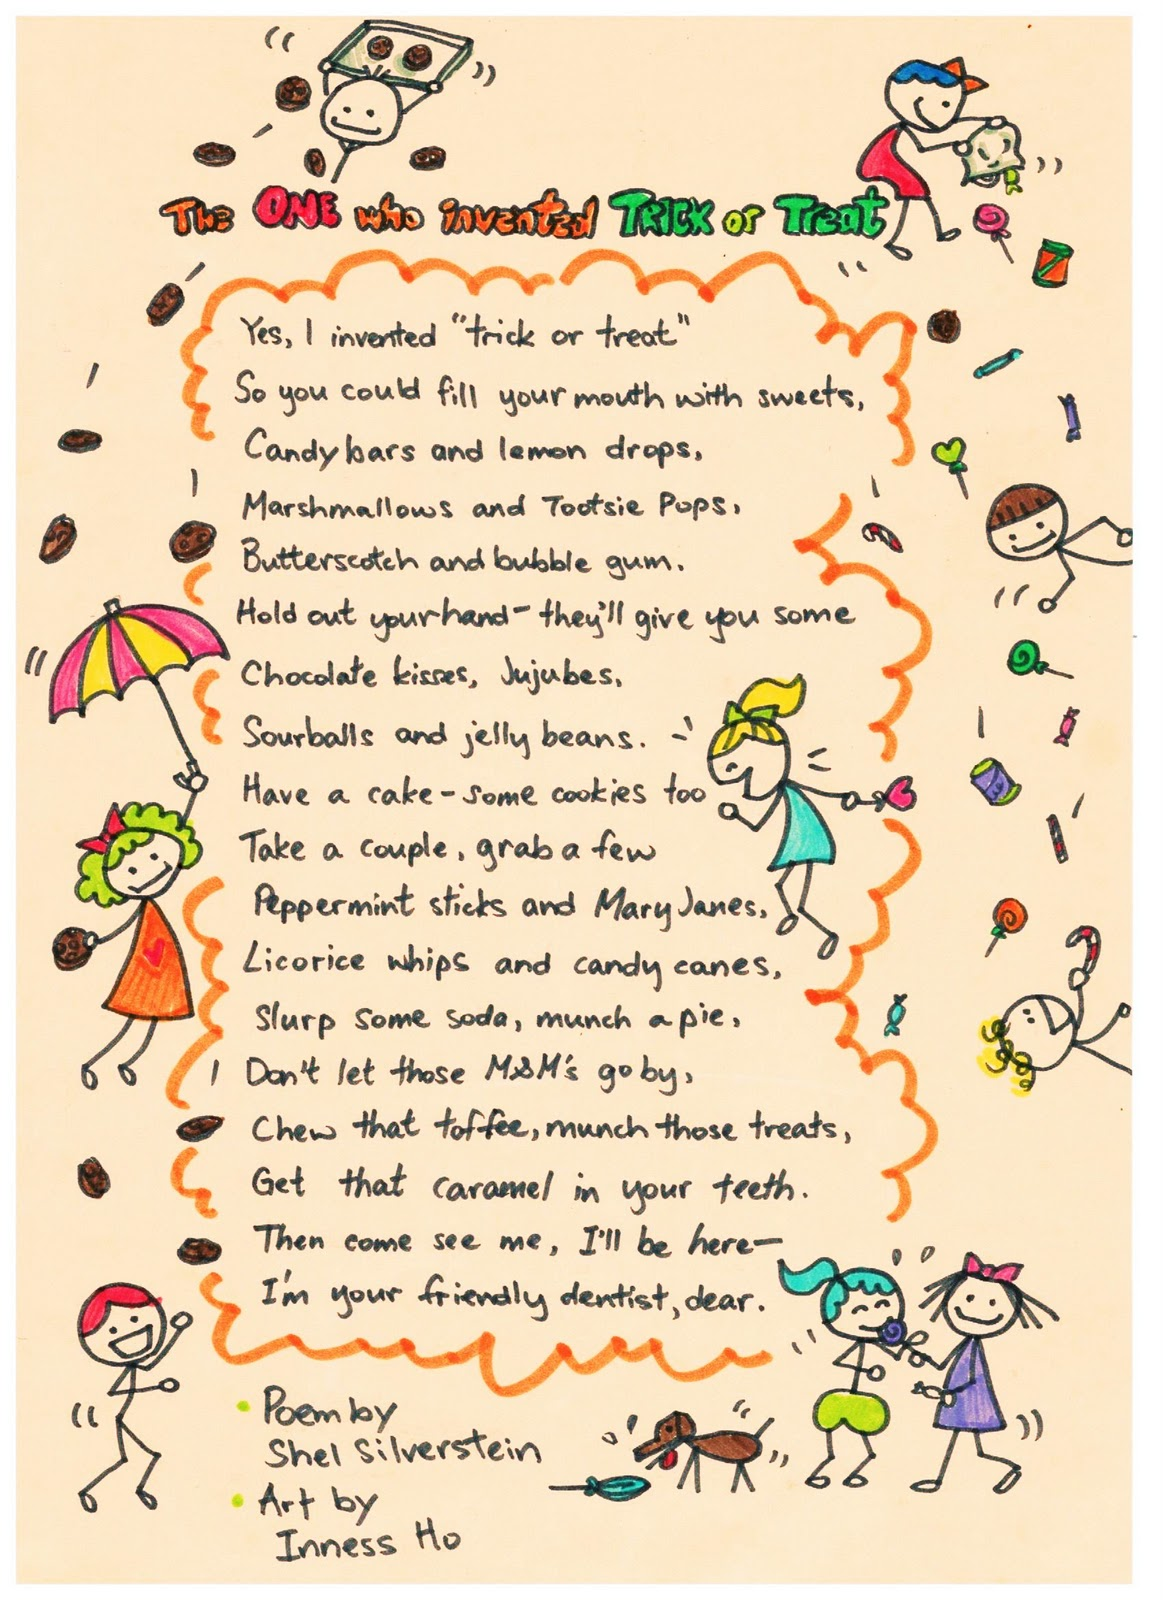 Halloween Trick Or Treat Poems The one who invented trick or treat by ...